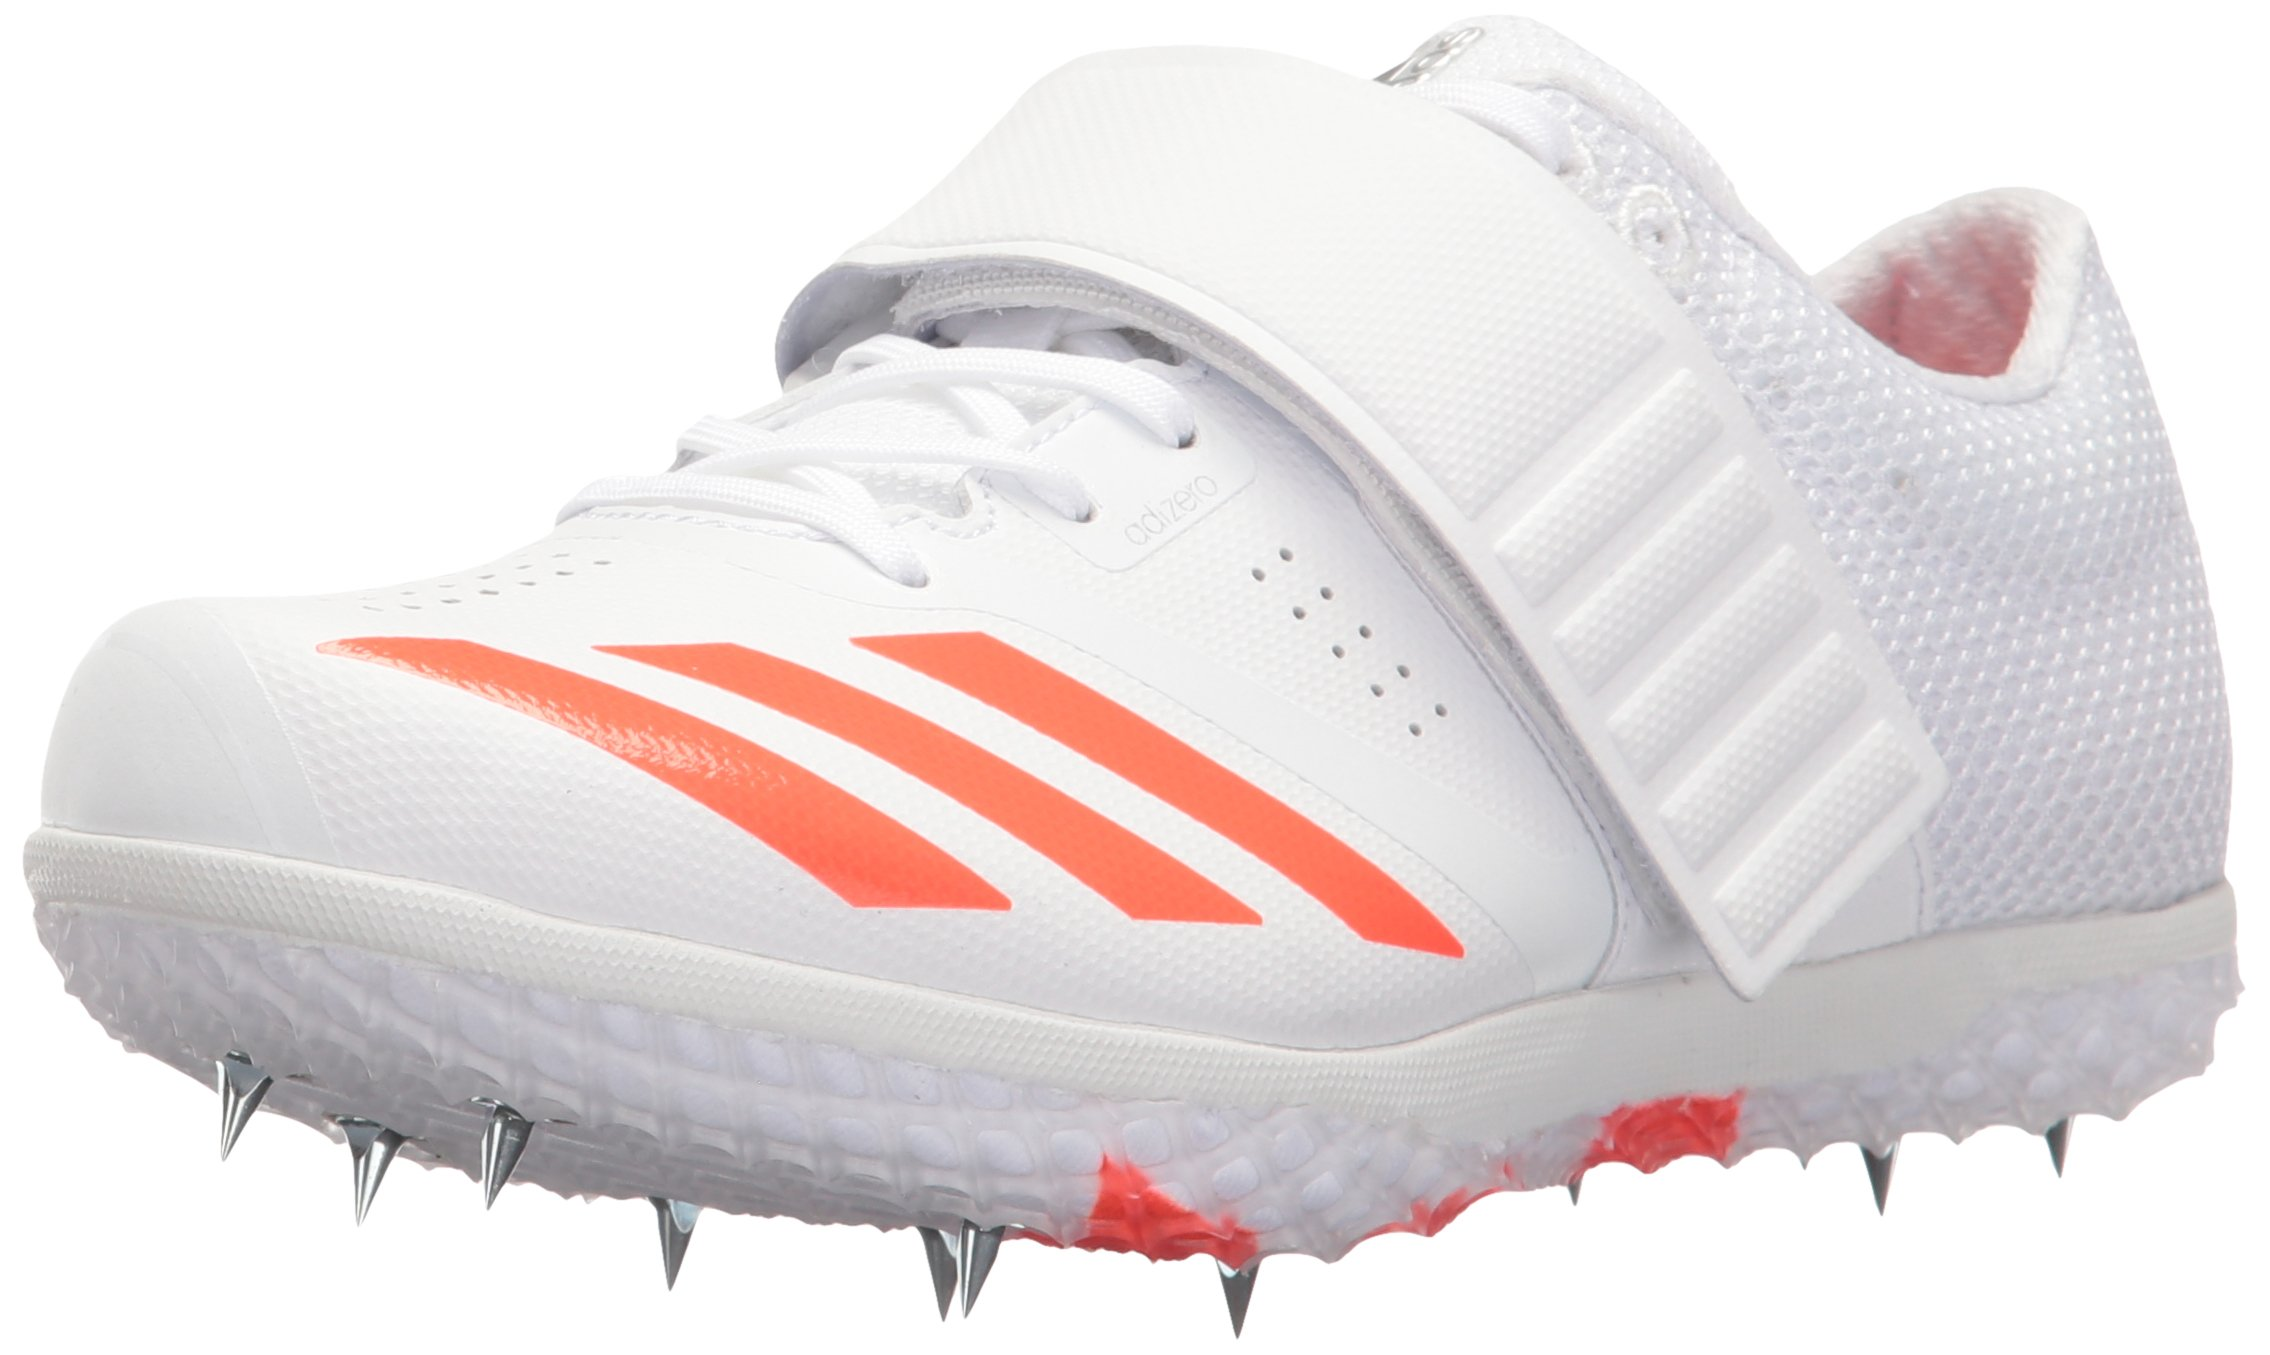 adidas Adizero HJ Track Shoe, White/Infrared/Metallic/Silver, 7.5 M US by adidas